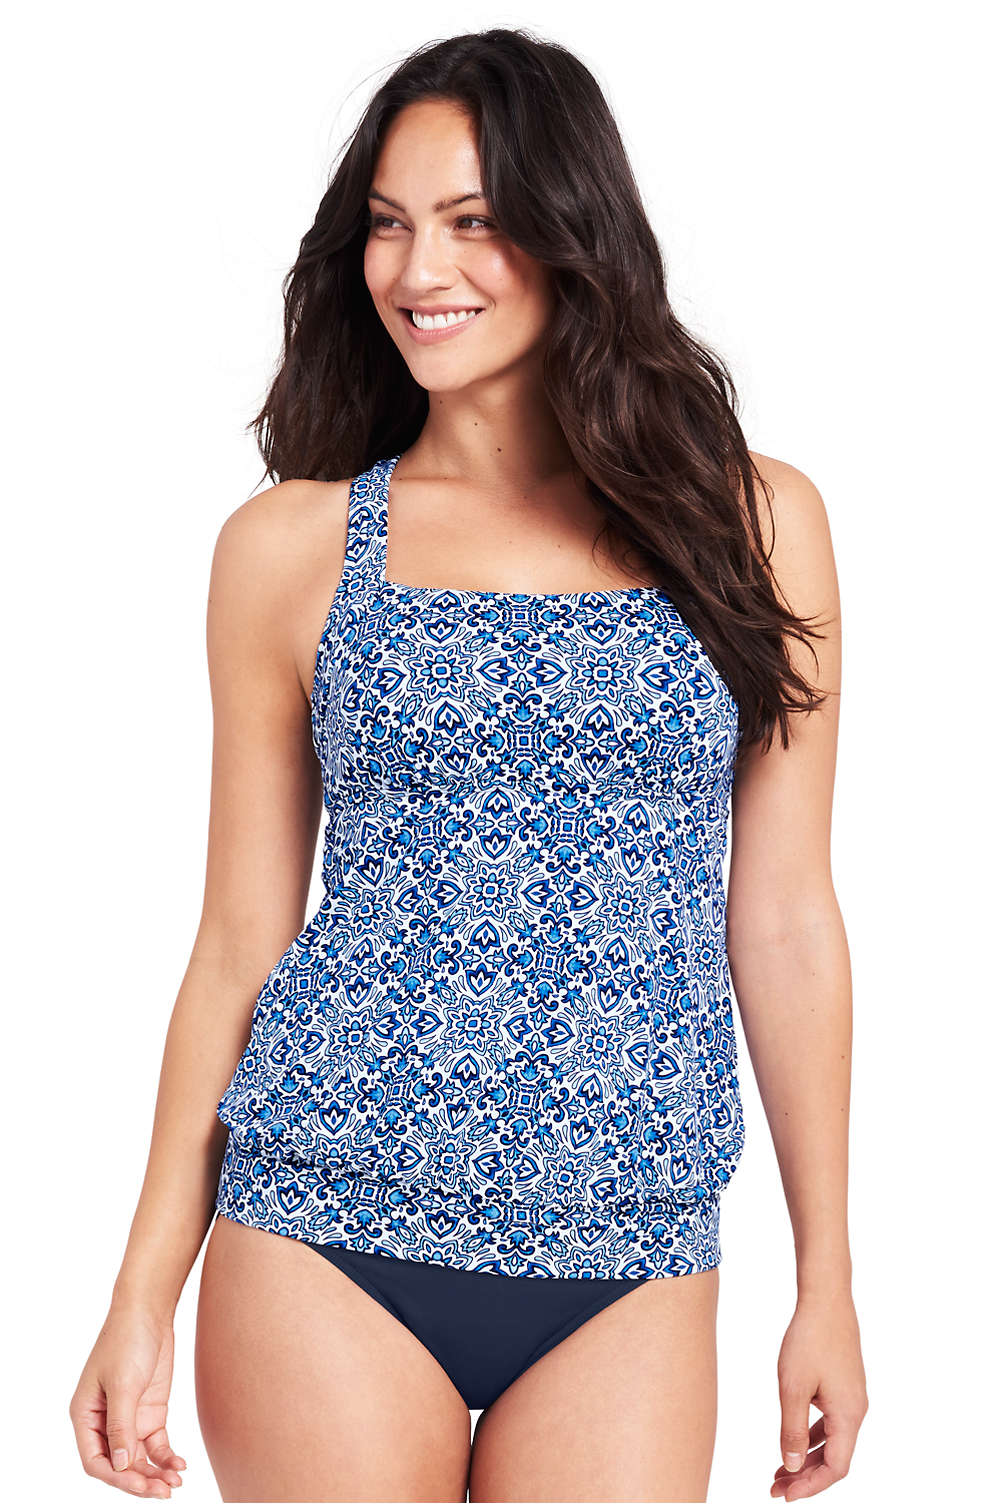 6a19fd75ebb37 Women's Blouson Tankini Top from Lands' End